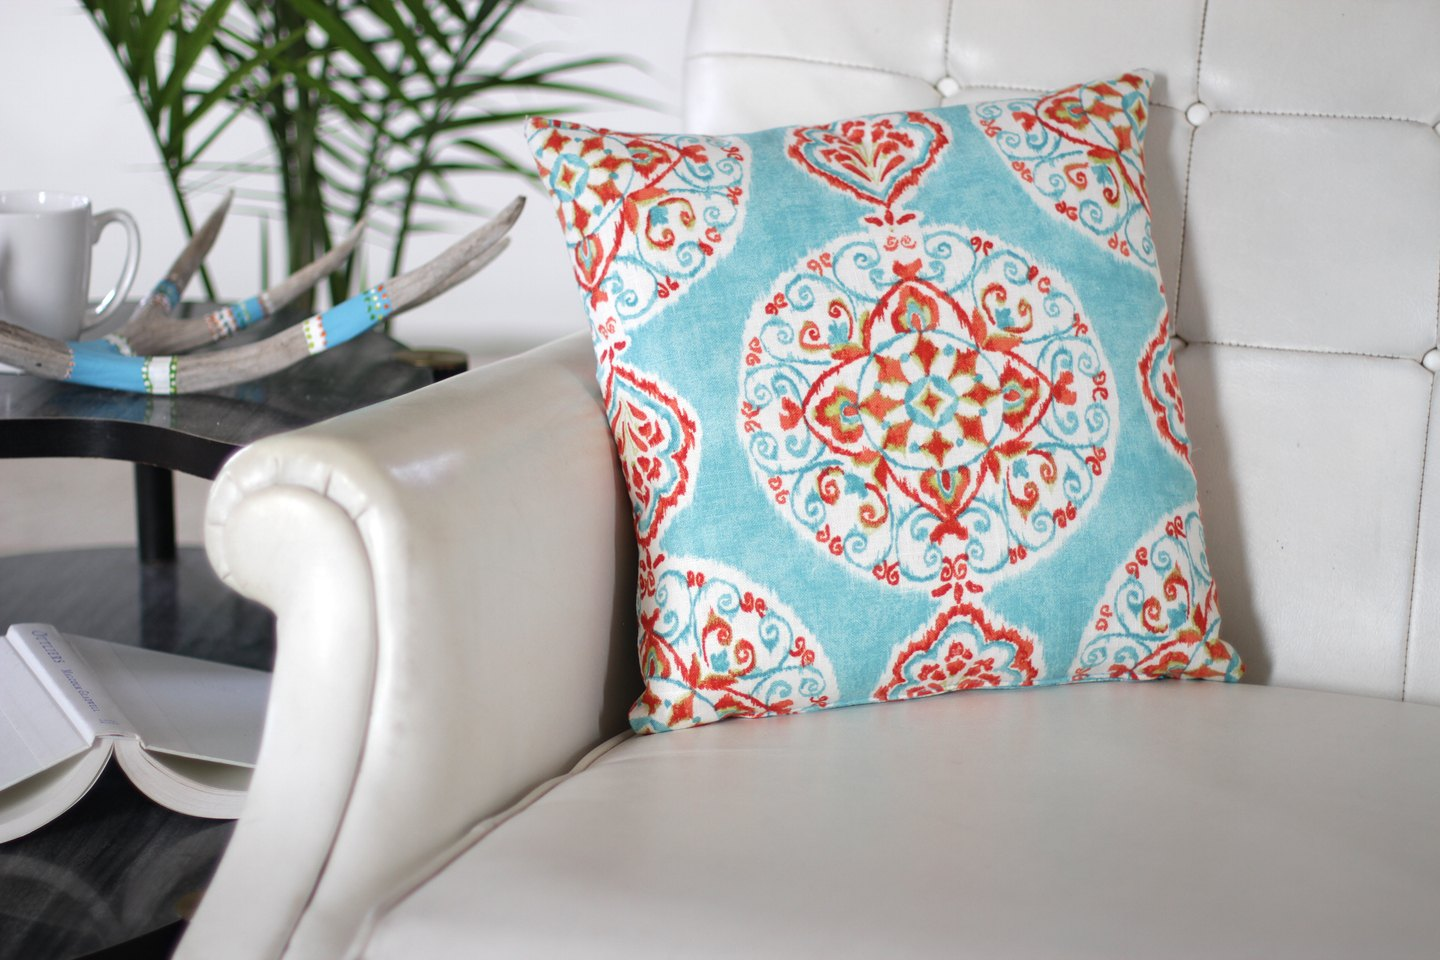 How to Make a Decorative Zippered Throw Pillow Cover eHow